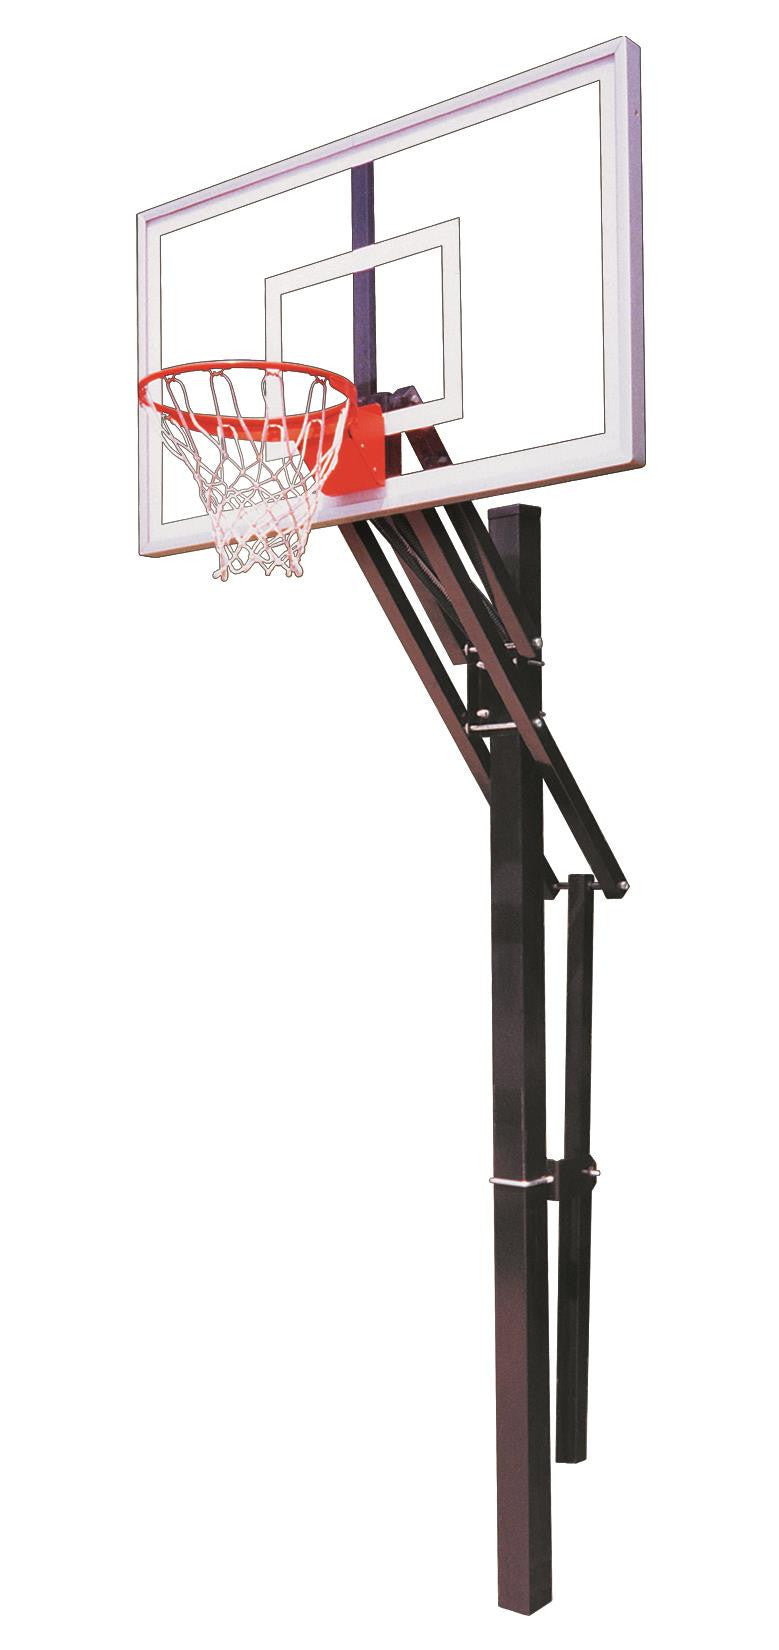 First Team Slam Nitro In Ground Outdoor Adjustable Basketball Hoop 60 inch Tempered Glass